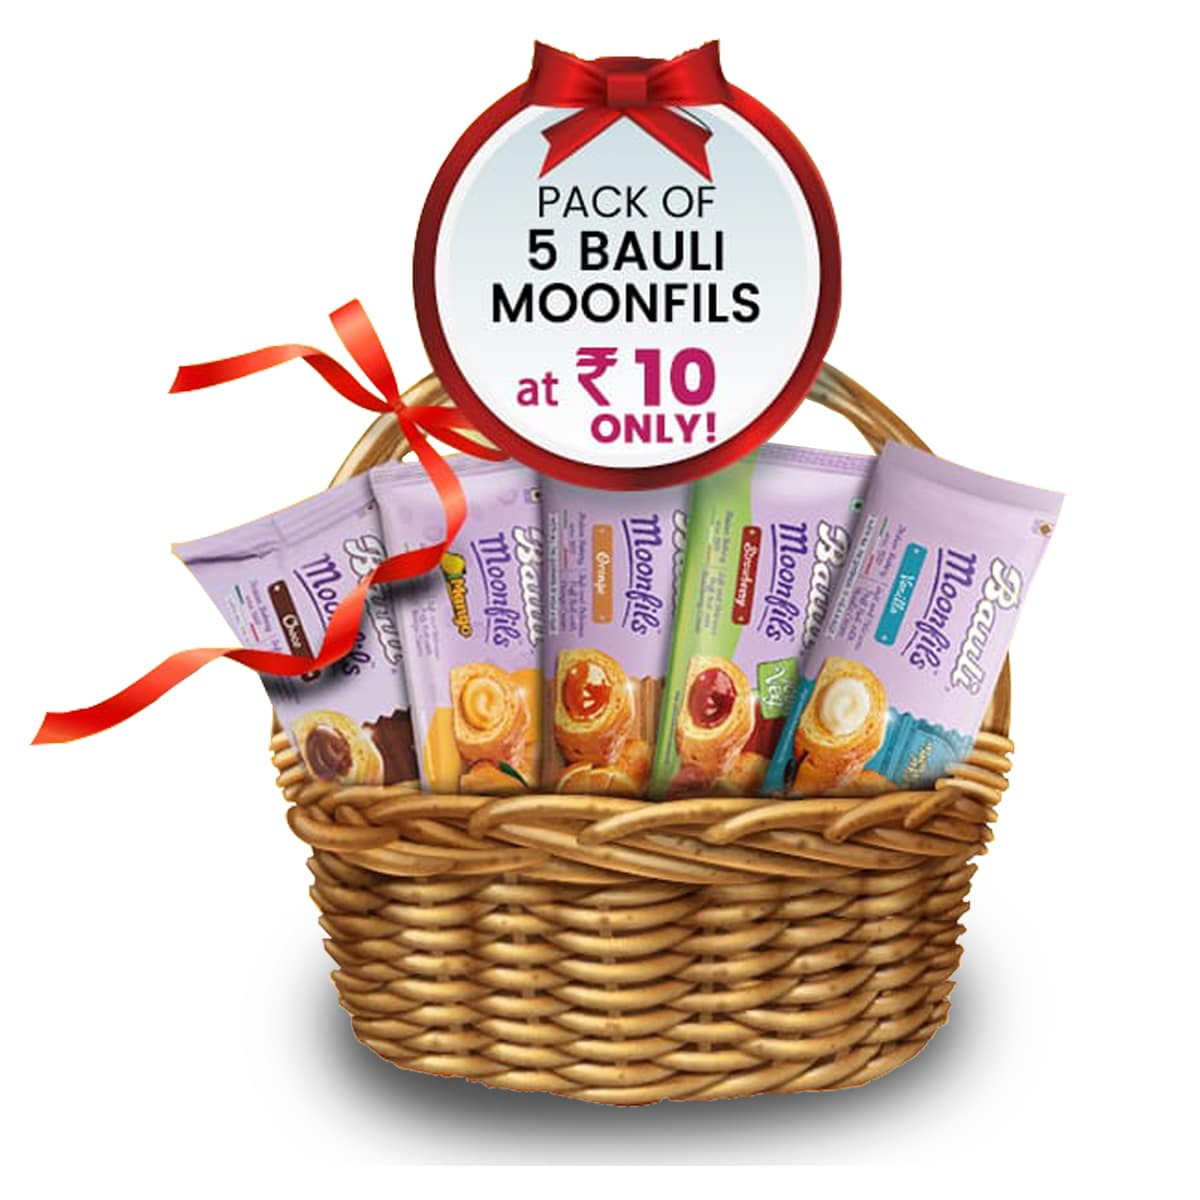 Pack Of 5 Bauli Moonfils